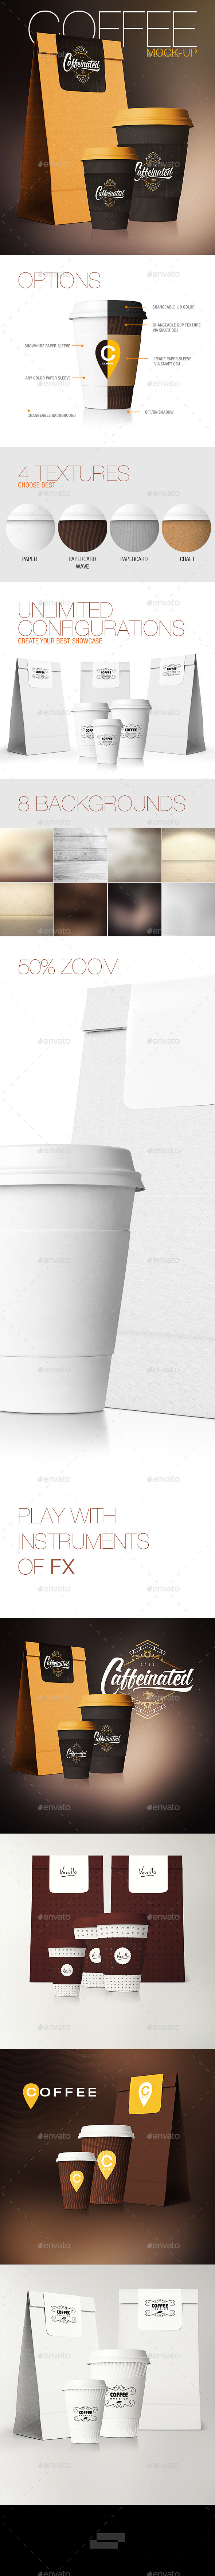 GraphicRiver Coffee Cup Coffee Package Mock-Up 11415496